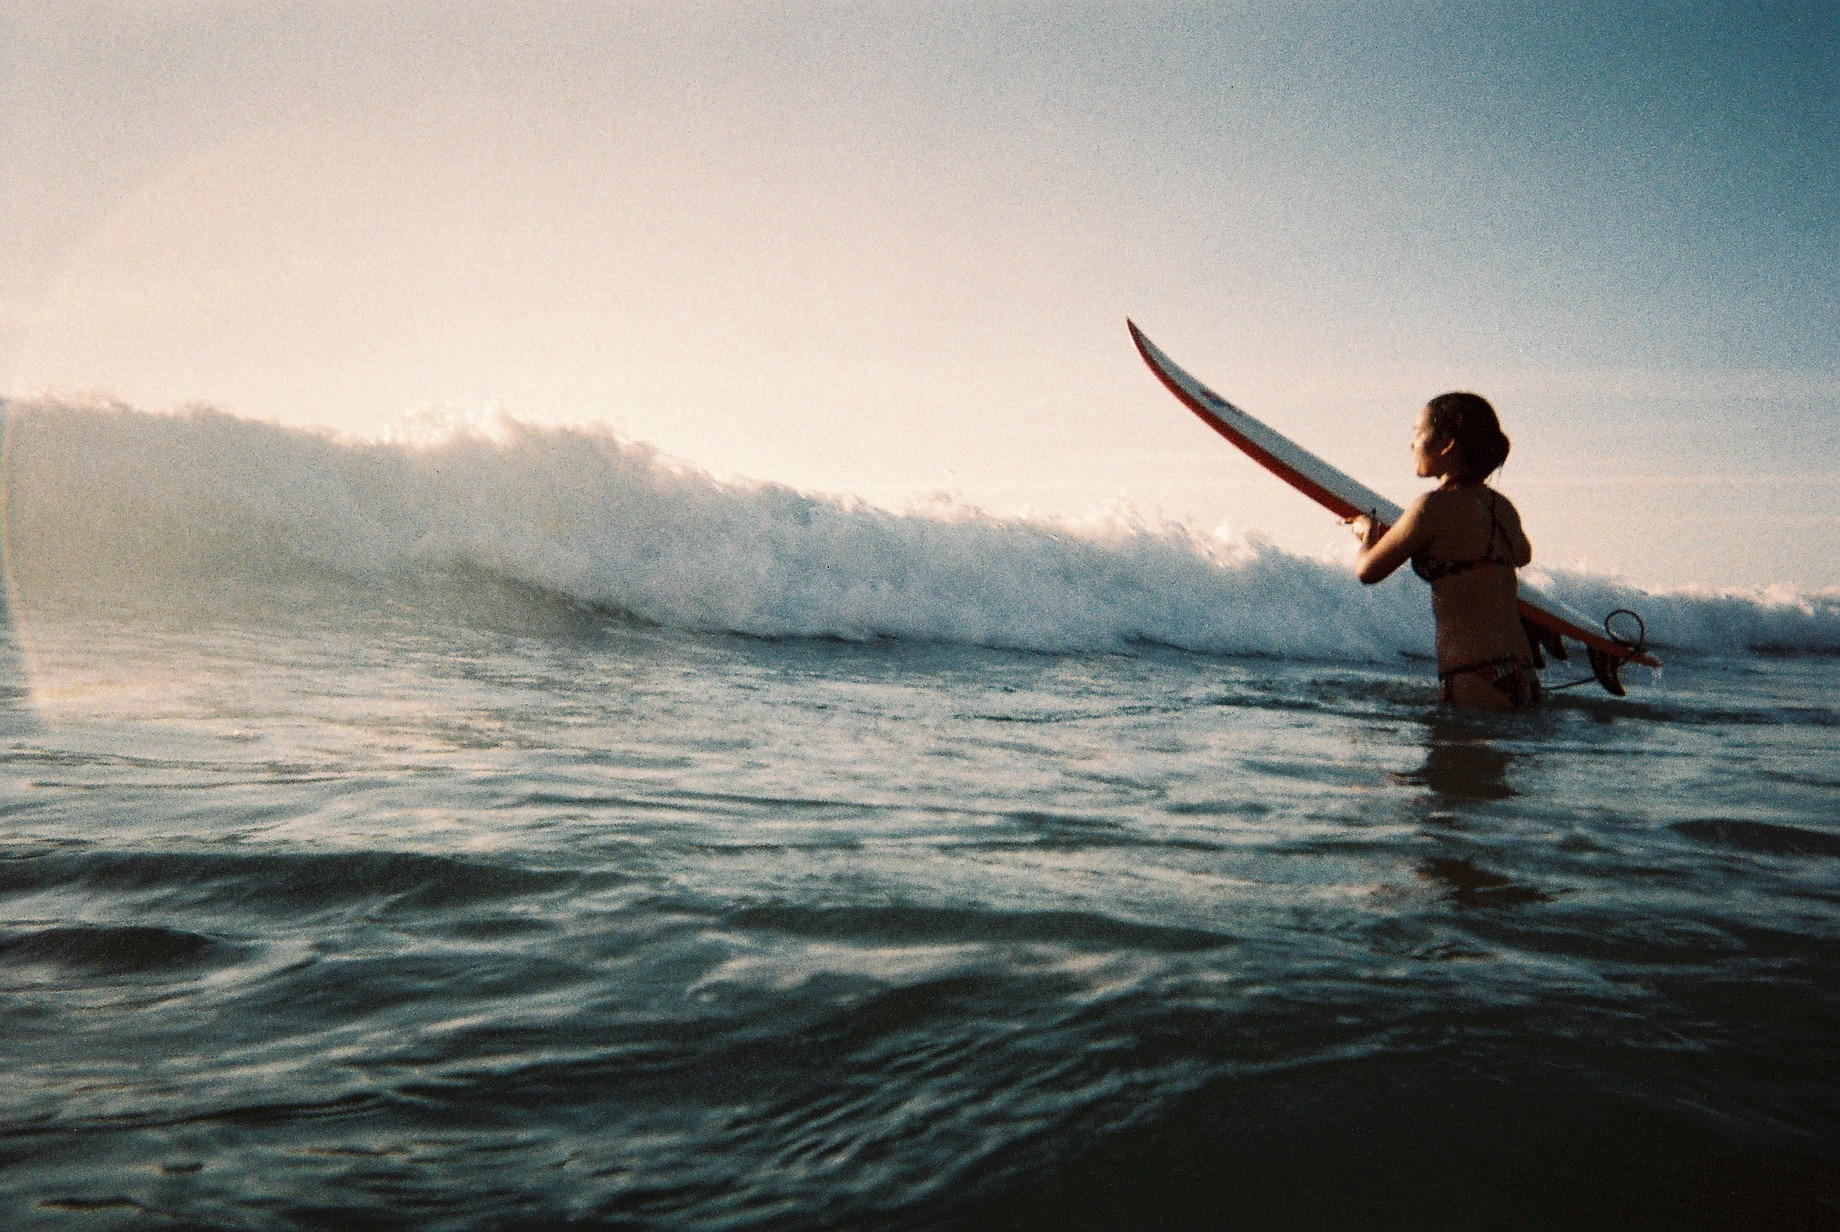 waterproof-disposable-images